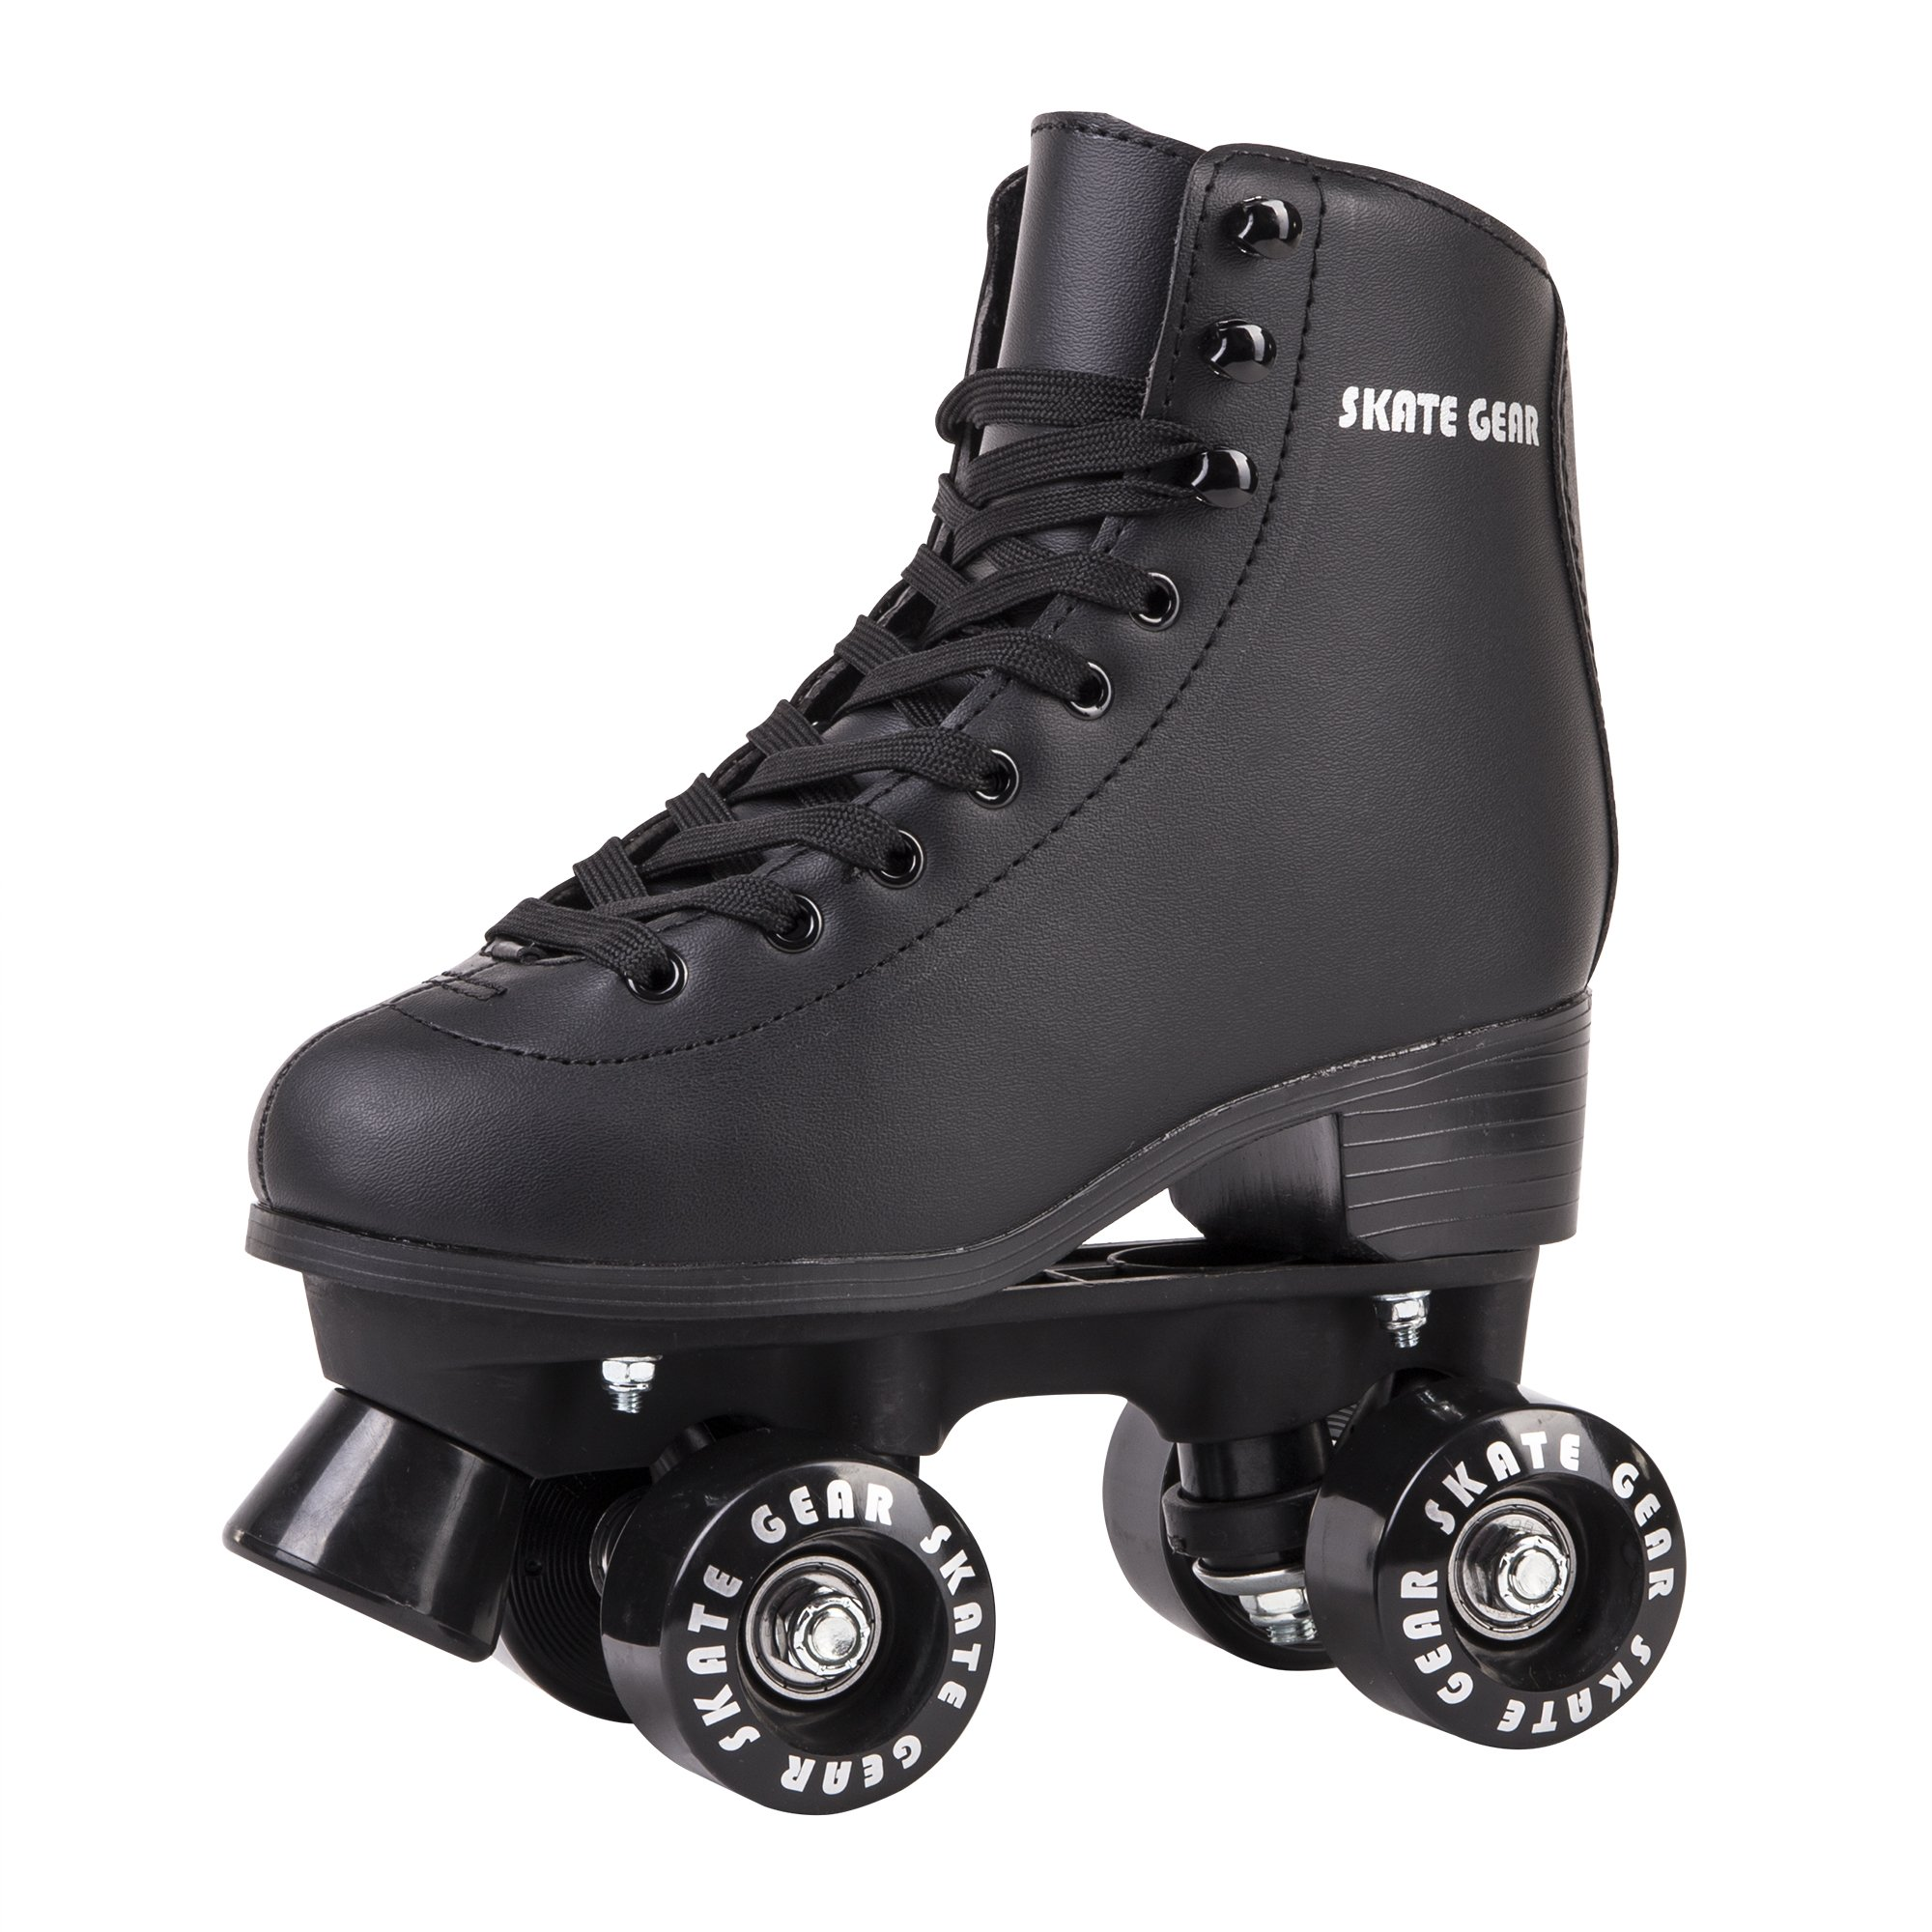 Cal 7 All-Purpose Indoor Outdoor Speedy Roller Skate for Youth and Adults (Black, Youth 5/Women's 6)